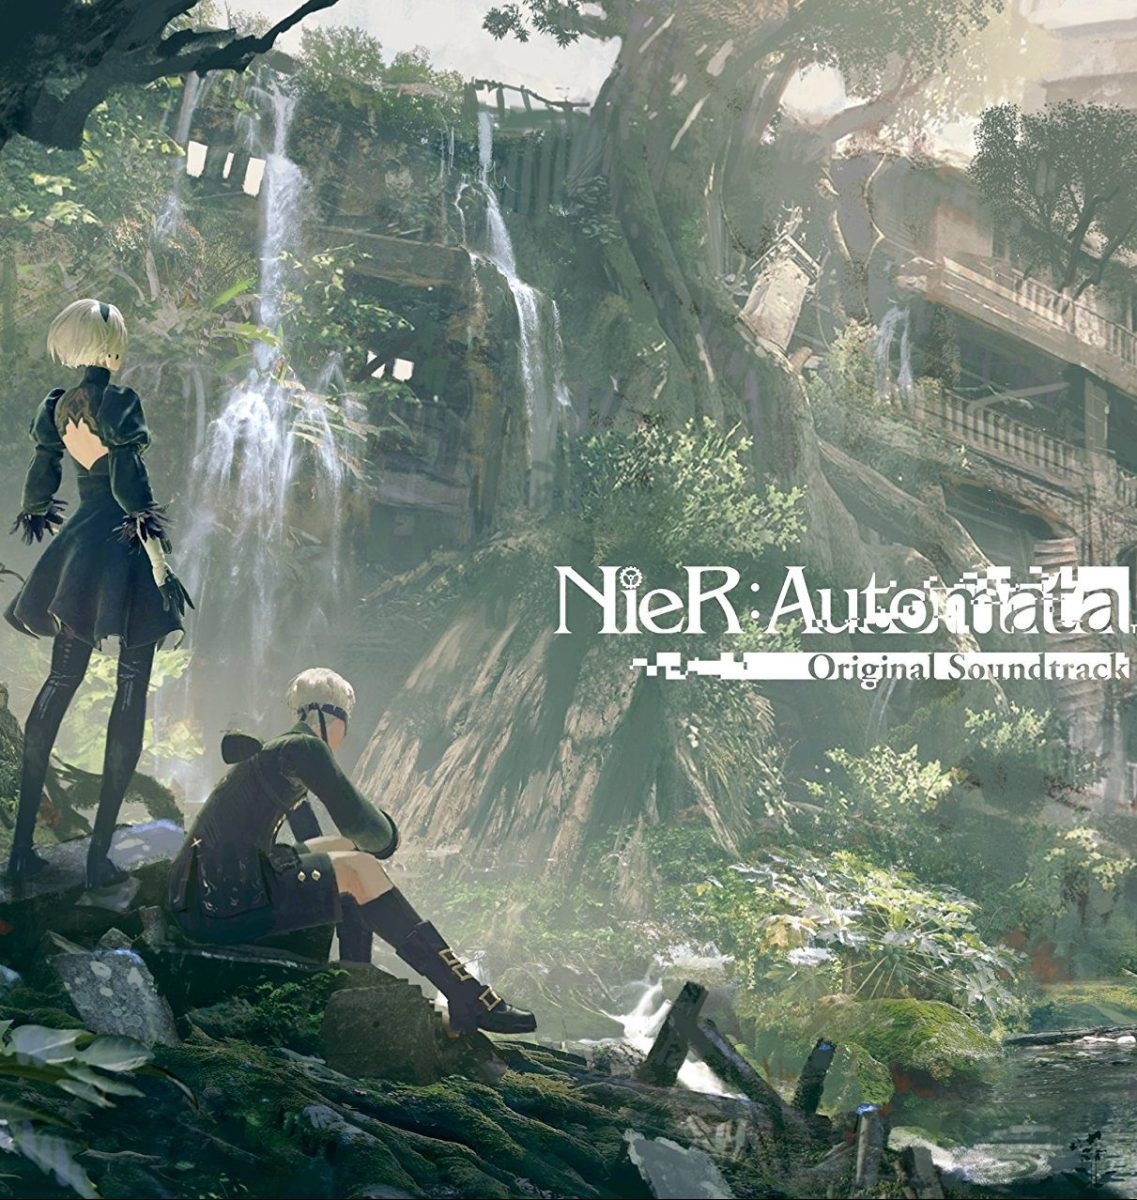 NieR Automata Original Soundtrack [4CDs]